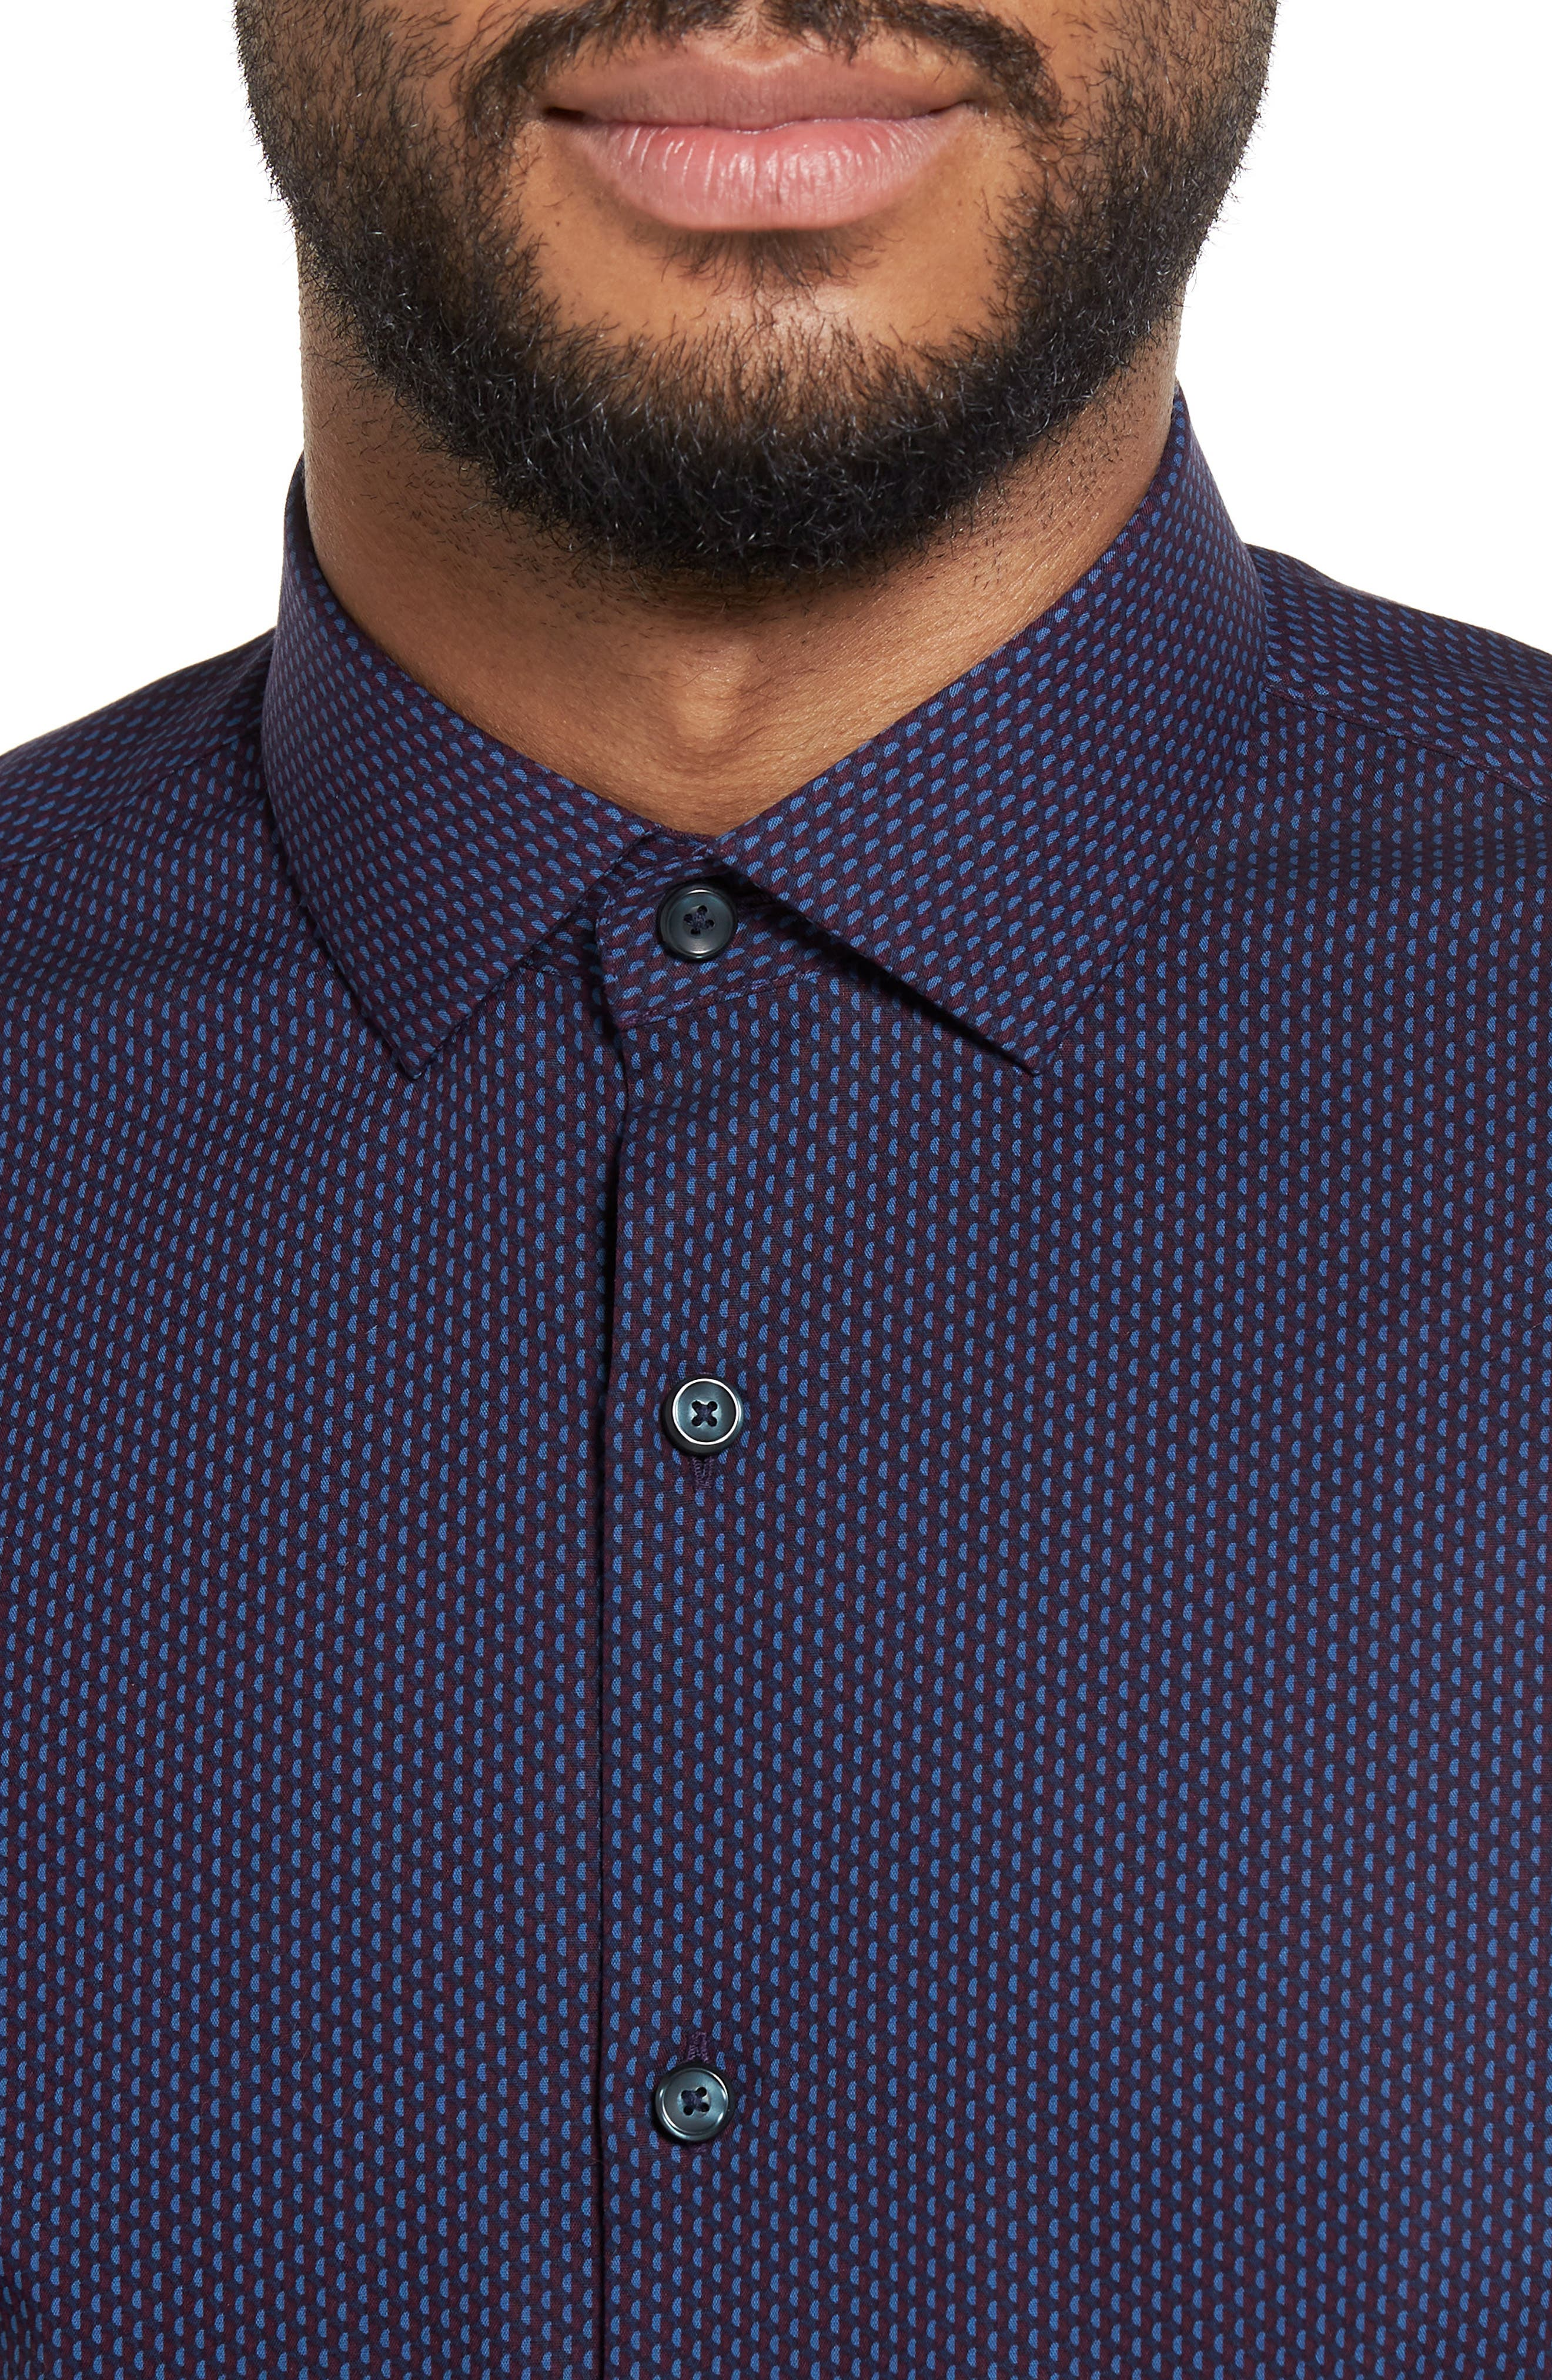 Print Sport Shirt,                             Alternate thumbnail 4, color,                             Blue Dark Burgundy Geo Print